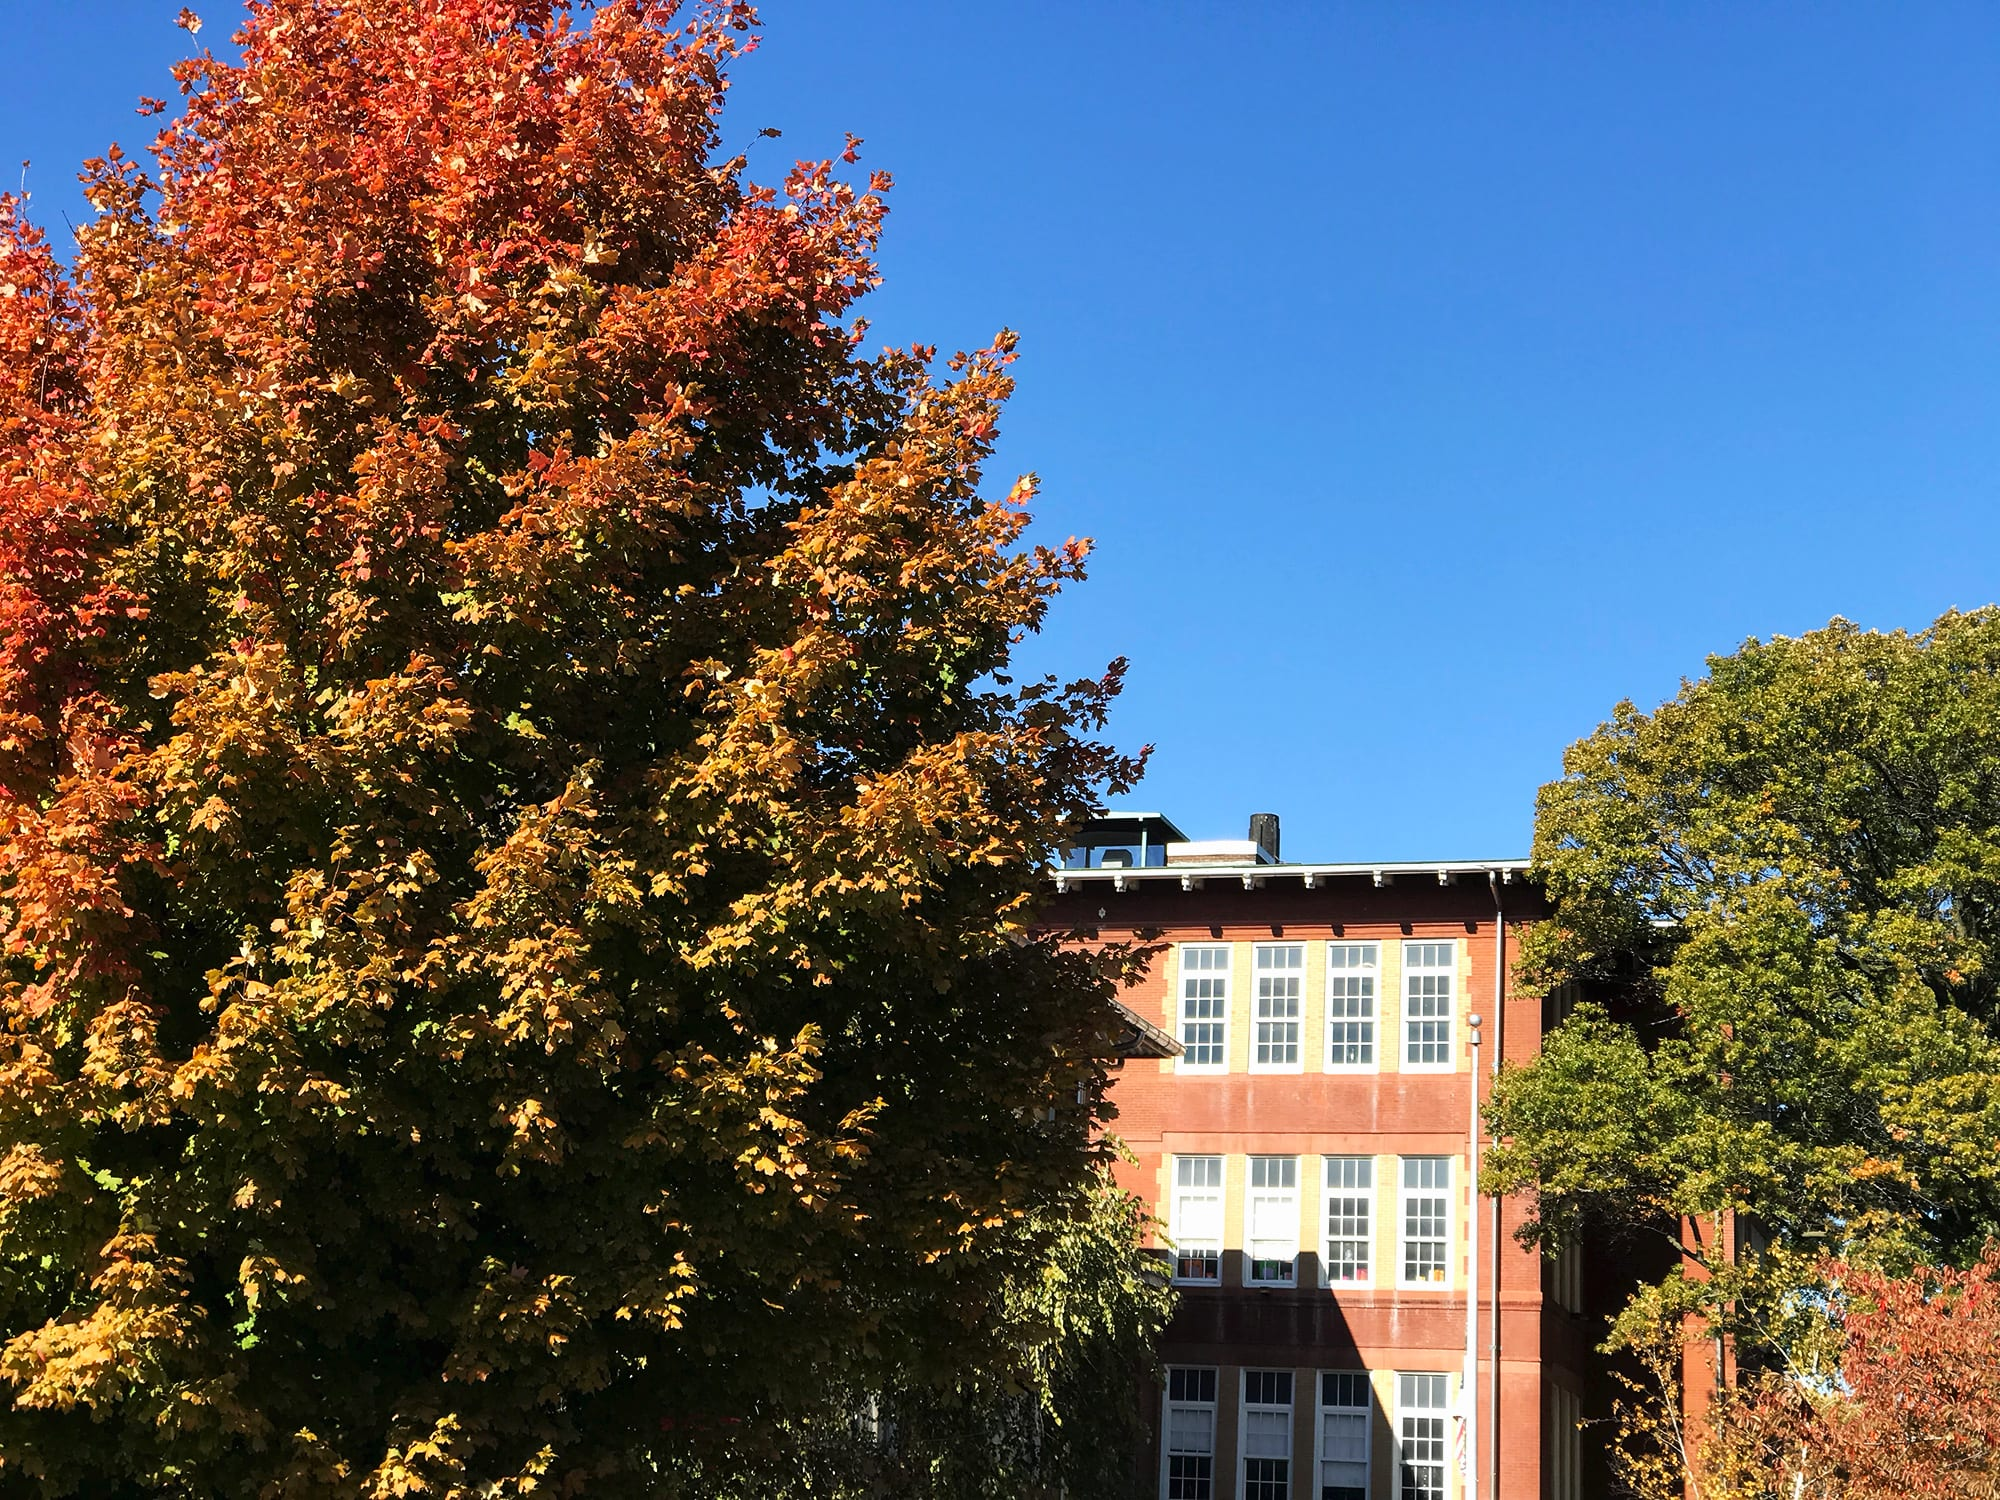 Fall foliage at Froebel School in Gravois Park.